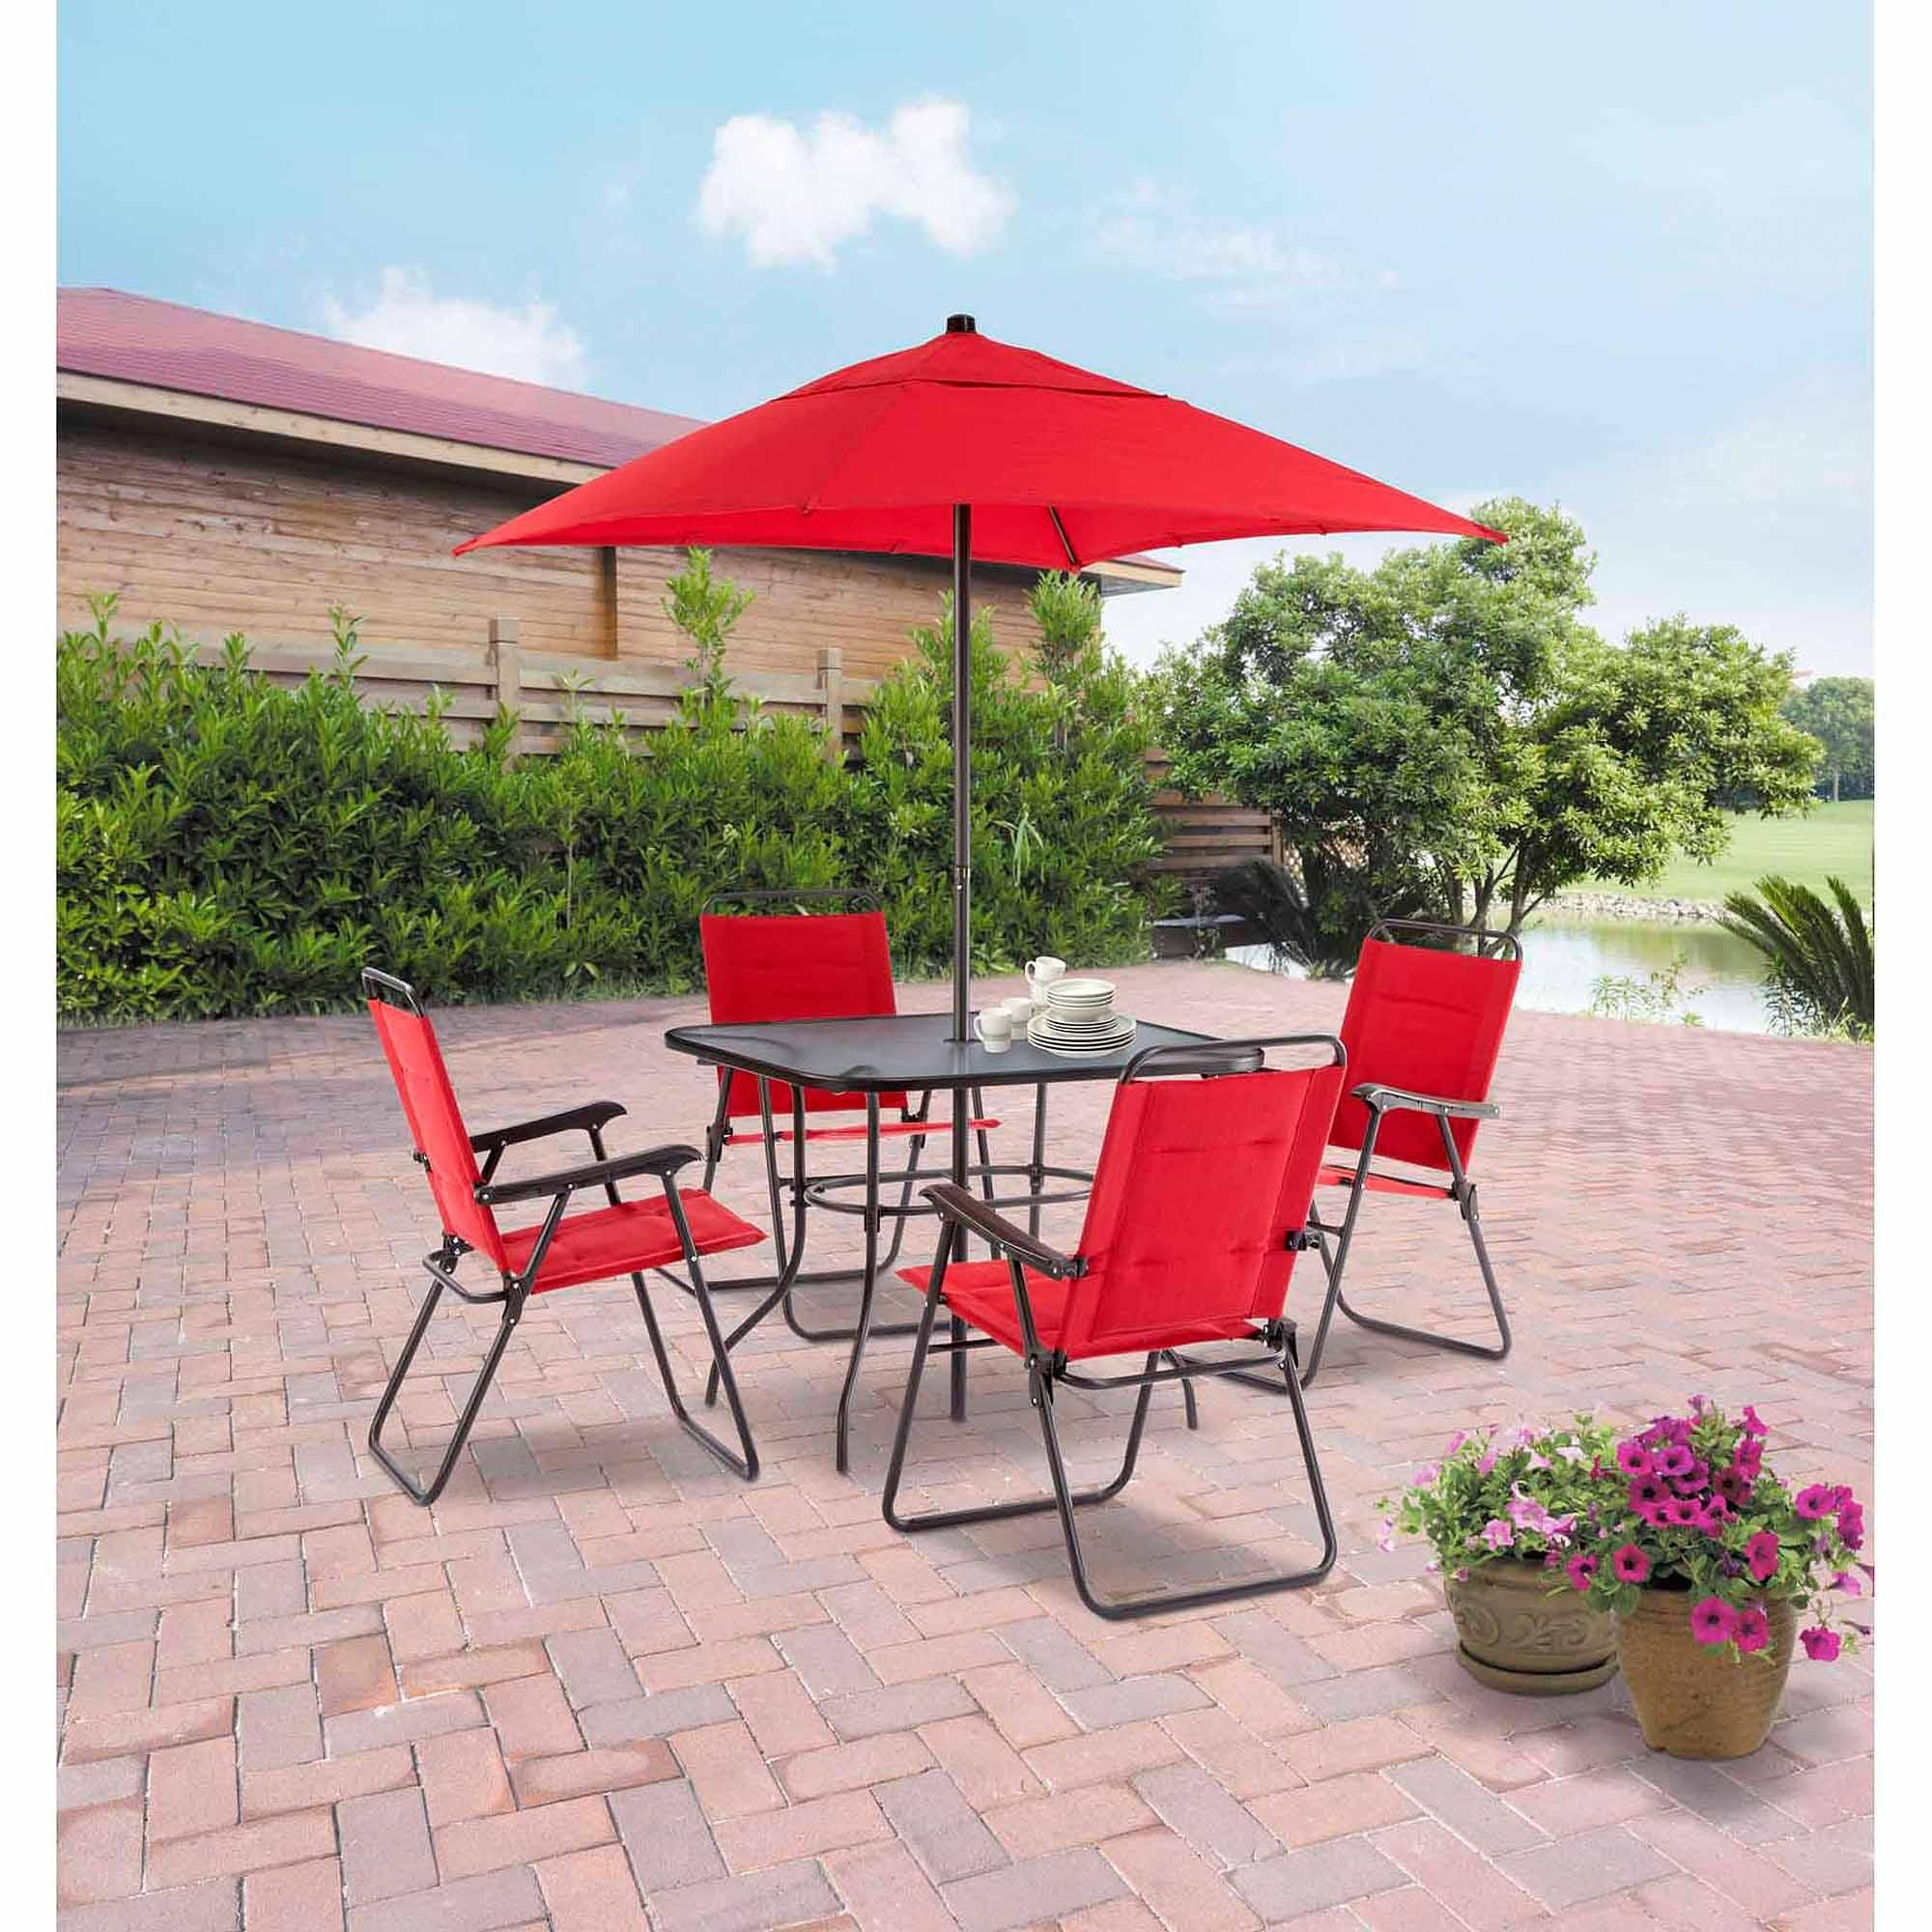 Merveilleux Outdoor Furniture Sale Walmart   Best Spray Paint For Wood Furniture Check  More At Http://cacophonouscreations.com/outdoor Furniture Sale Walmart/